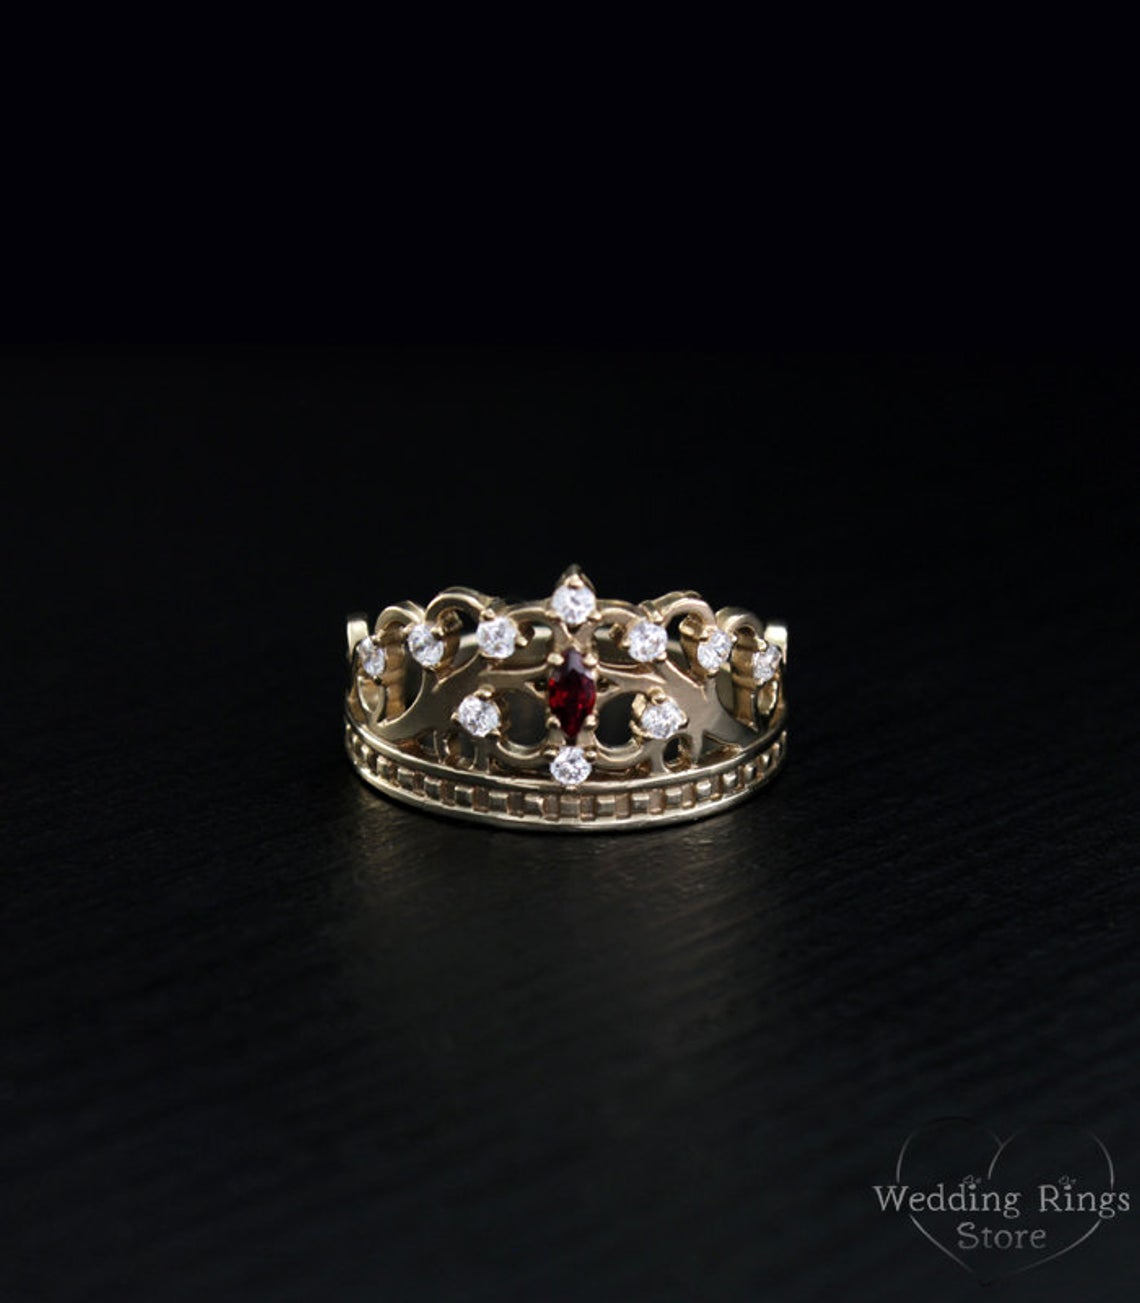 Gold Crown Ring, Princess Tiara Ring, Crown Unique Ring, Anniversary Ring,  Crown Ring, Beautiful Ring Crown, Gift For Women, Amazing Ring Pertaining To Most Recent Princess Tiara Crown Rings (View 10 of 25)